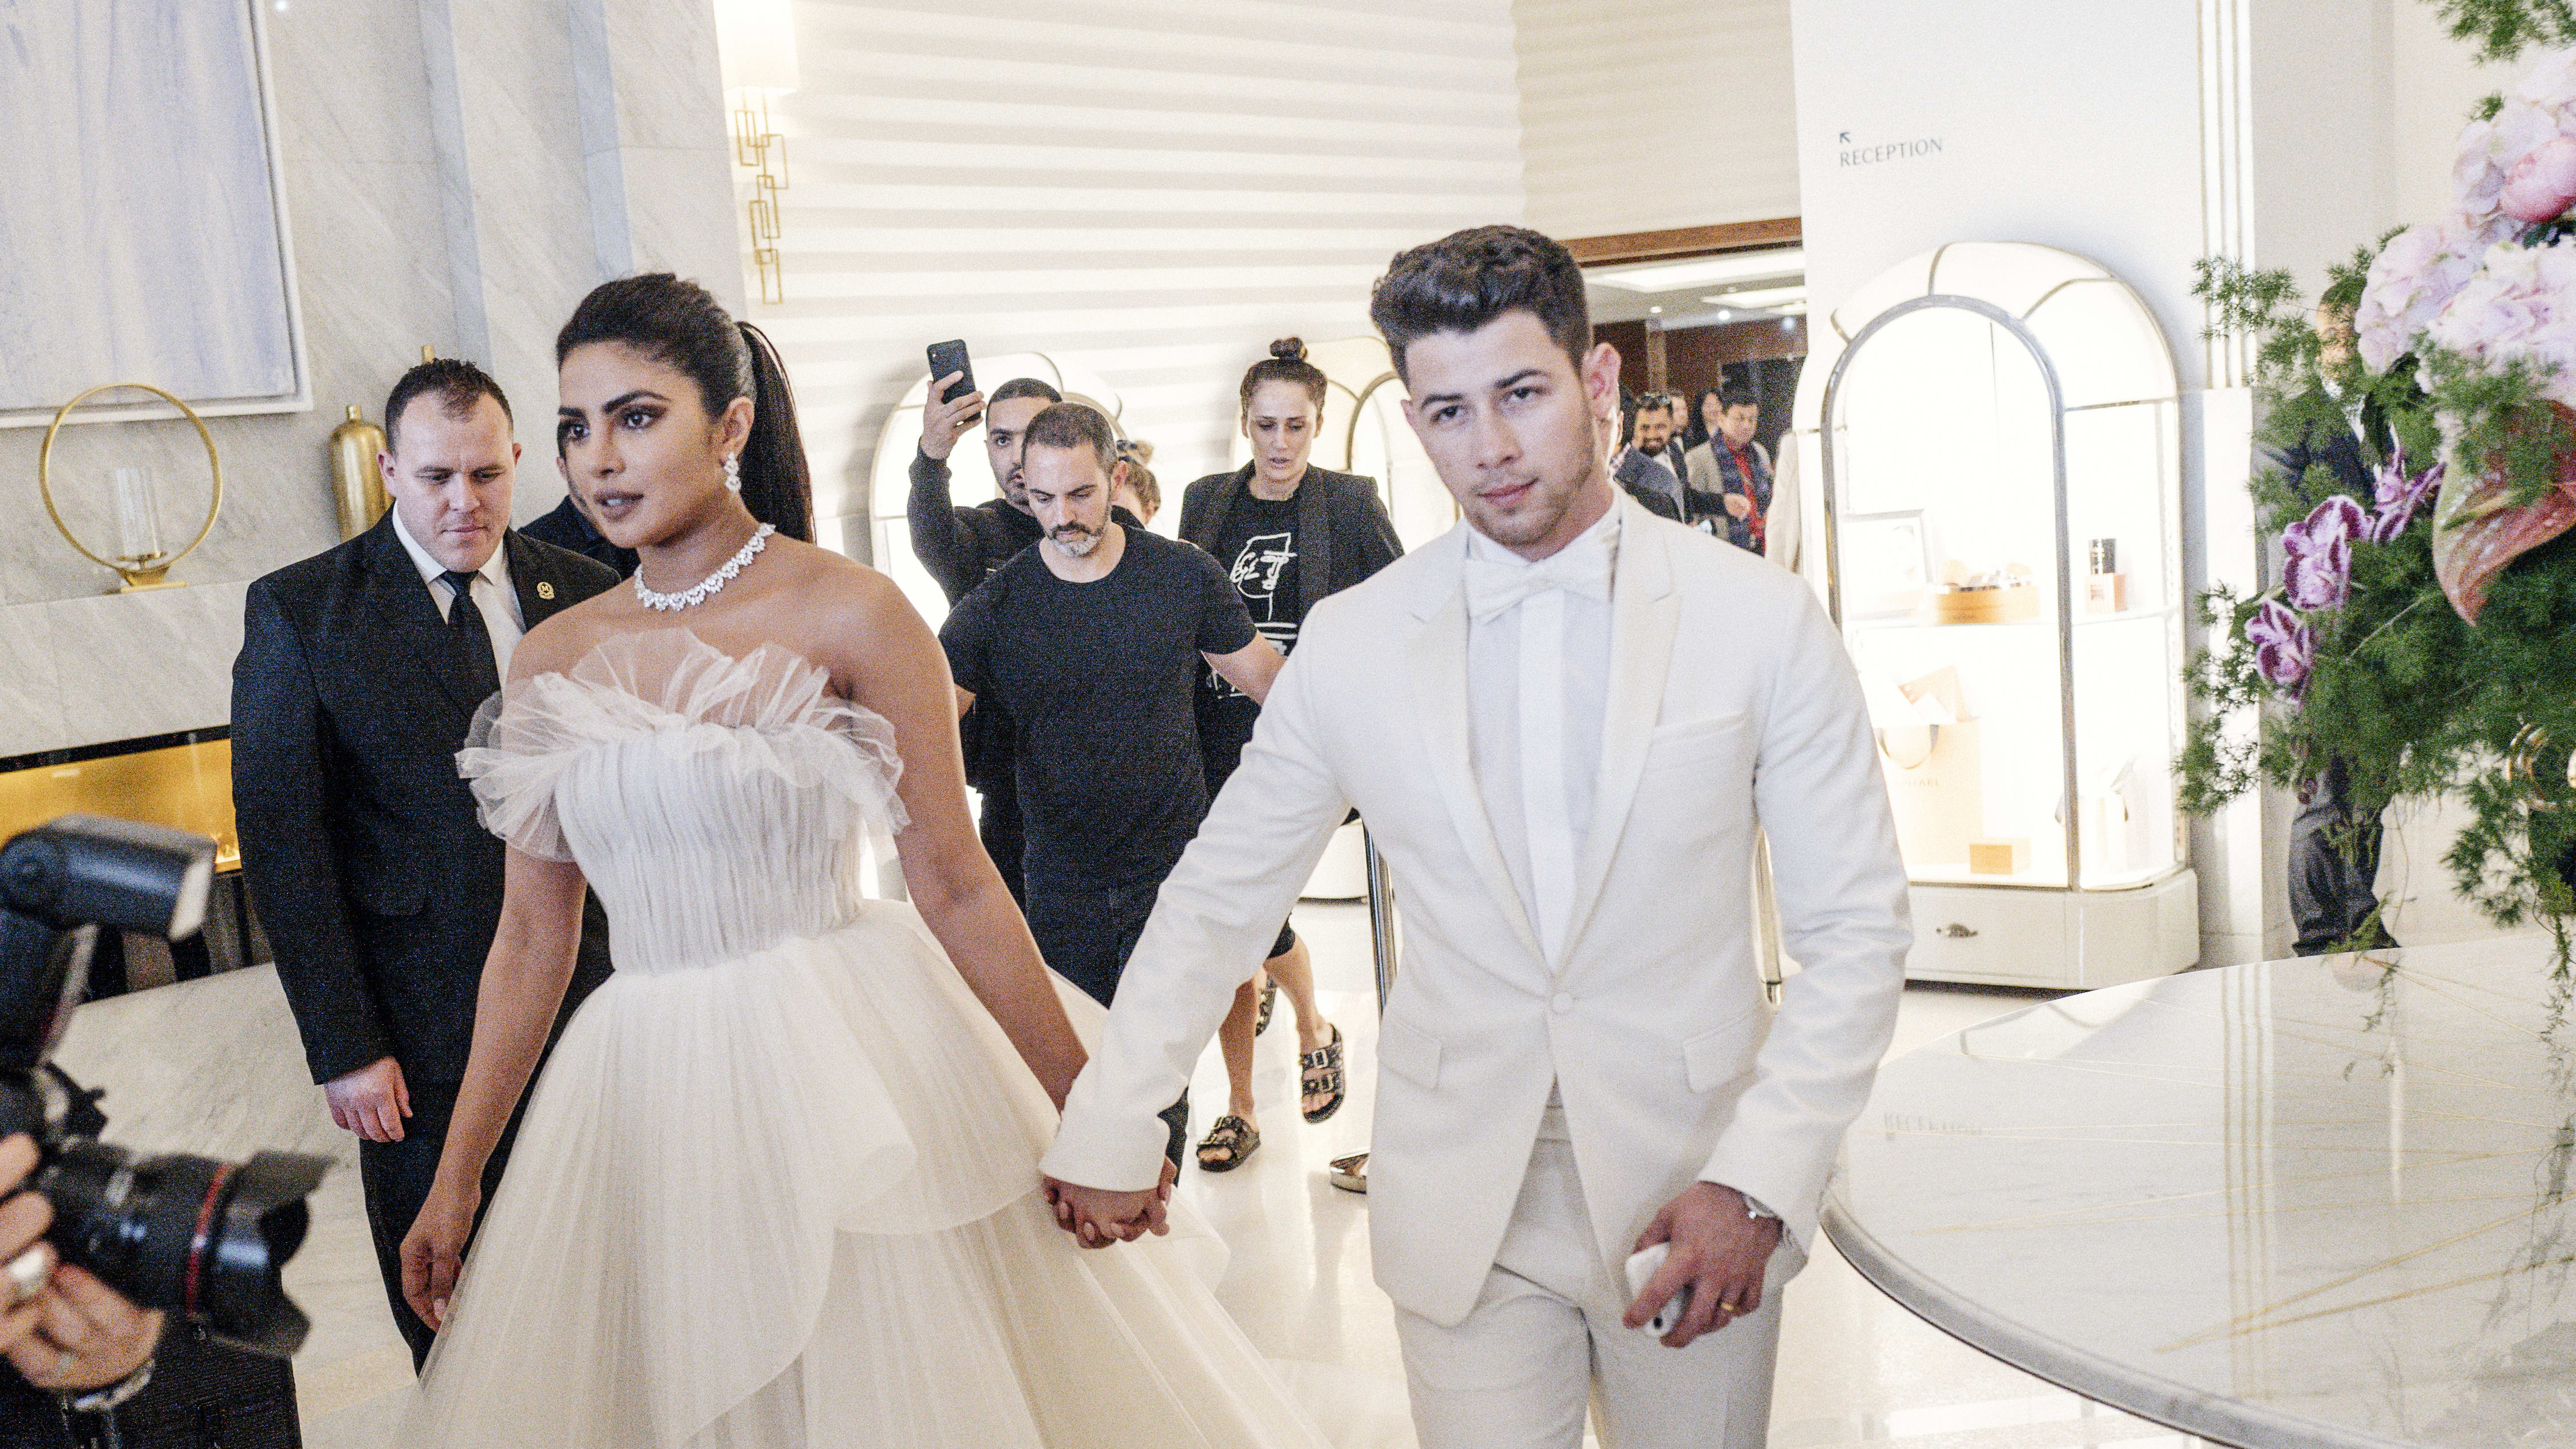 CANNES, FRANCE - MAY 18: (EDITORS NOTE: Image has been digitally altered)  Priyanka Chopra and Nick Jonas at the Martinez Hotel during the 72nd annual Cannes Film Festival on May 18, 2019 in Cannes, France. (Photo by Gareth Cattermole/Getty Images)